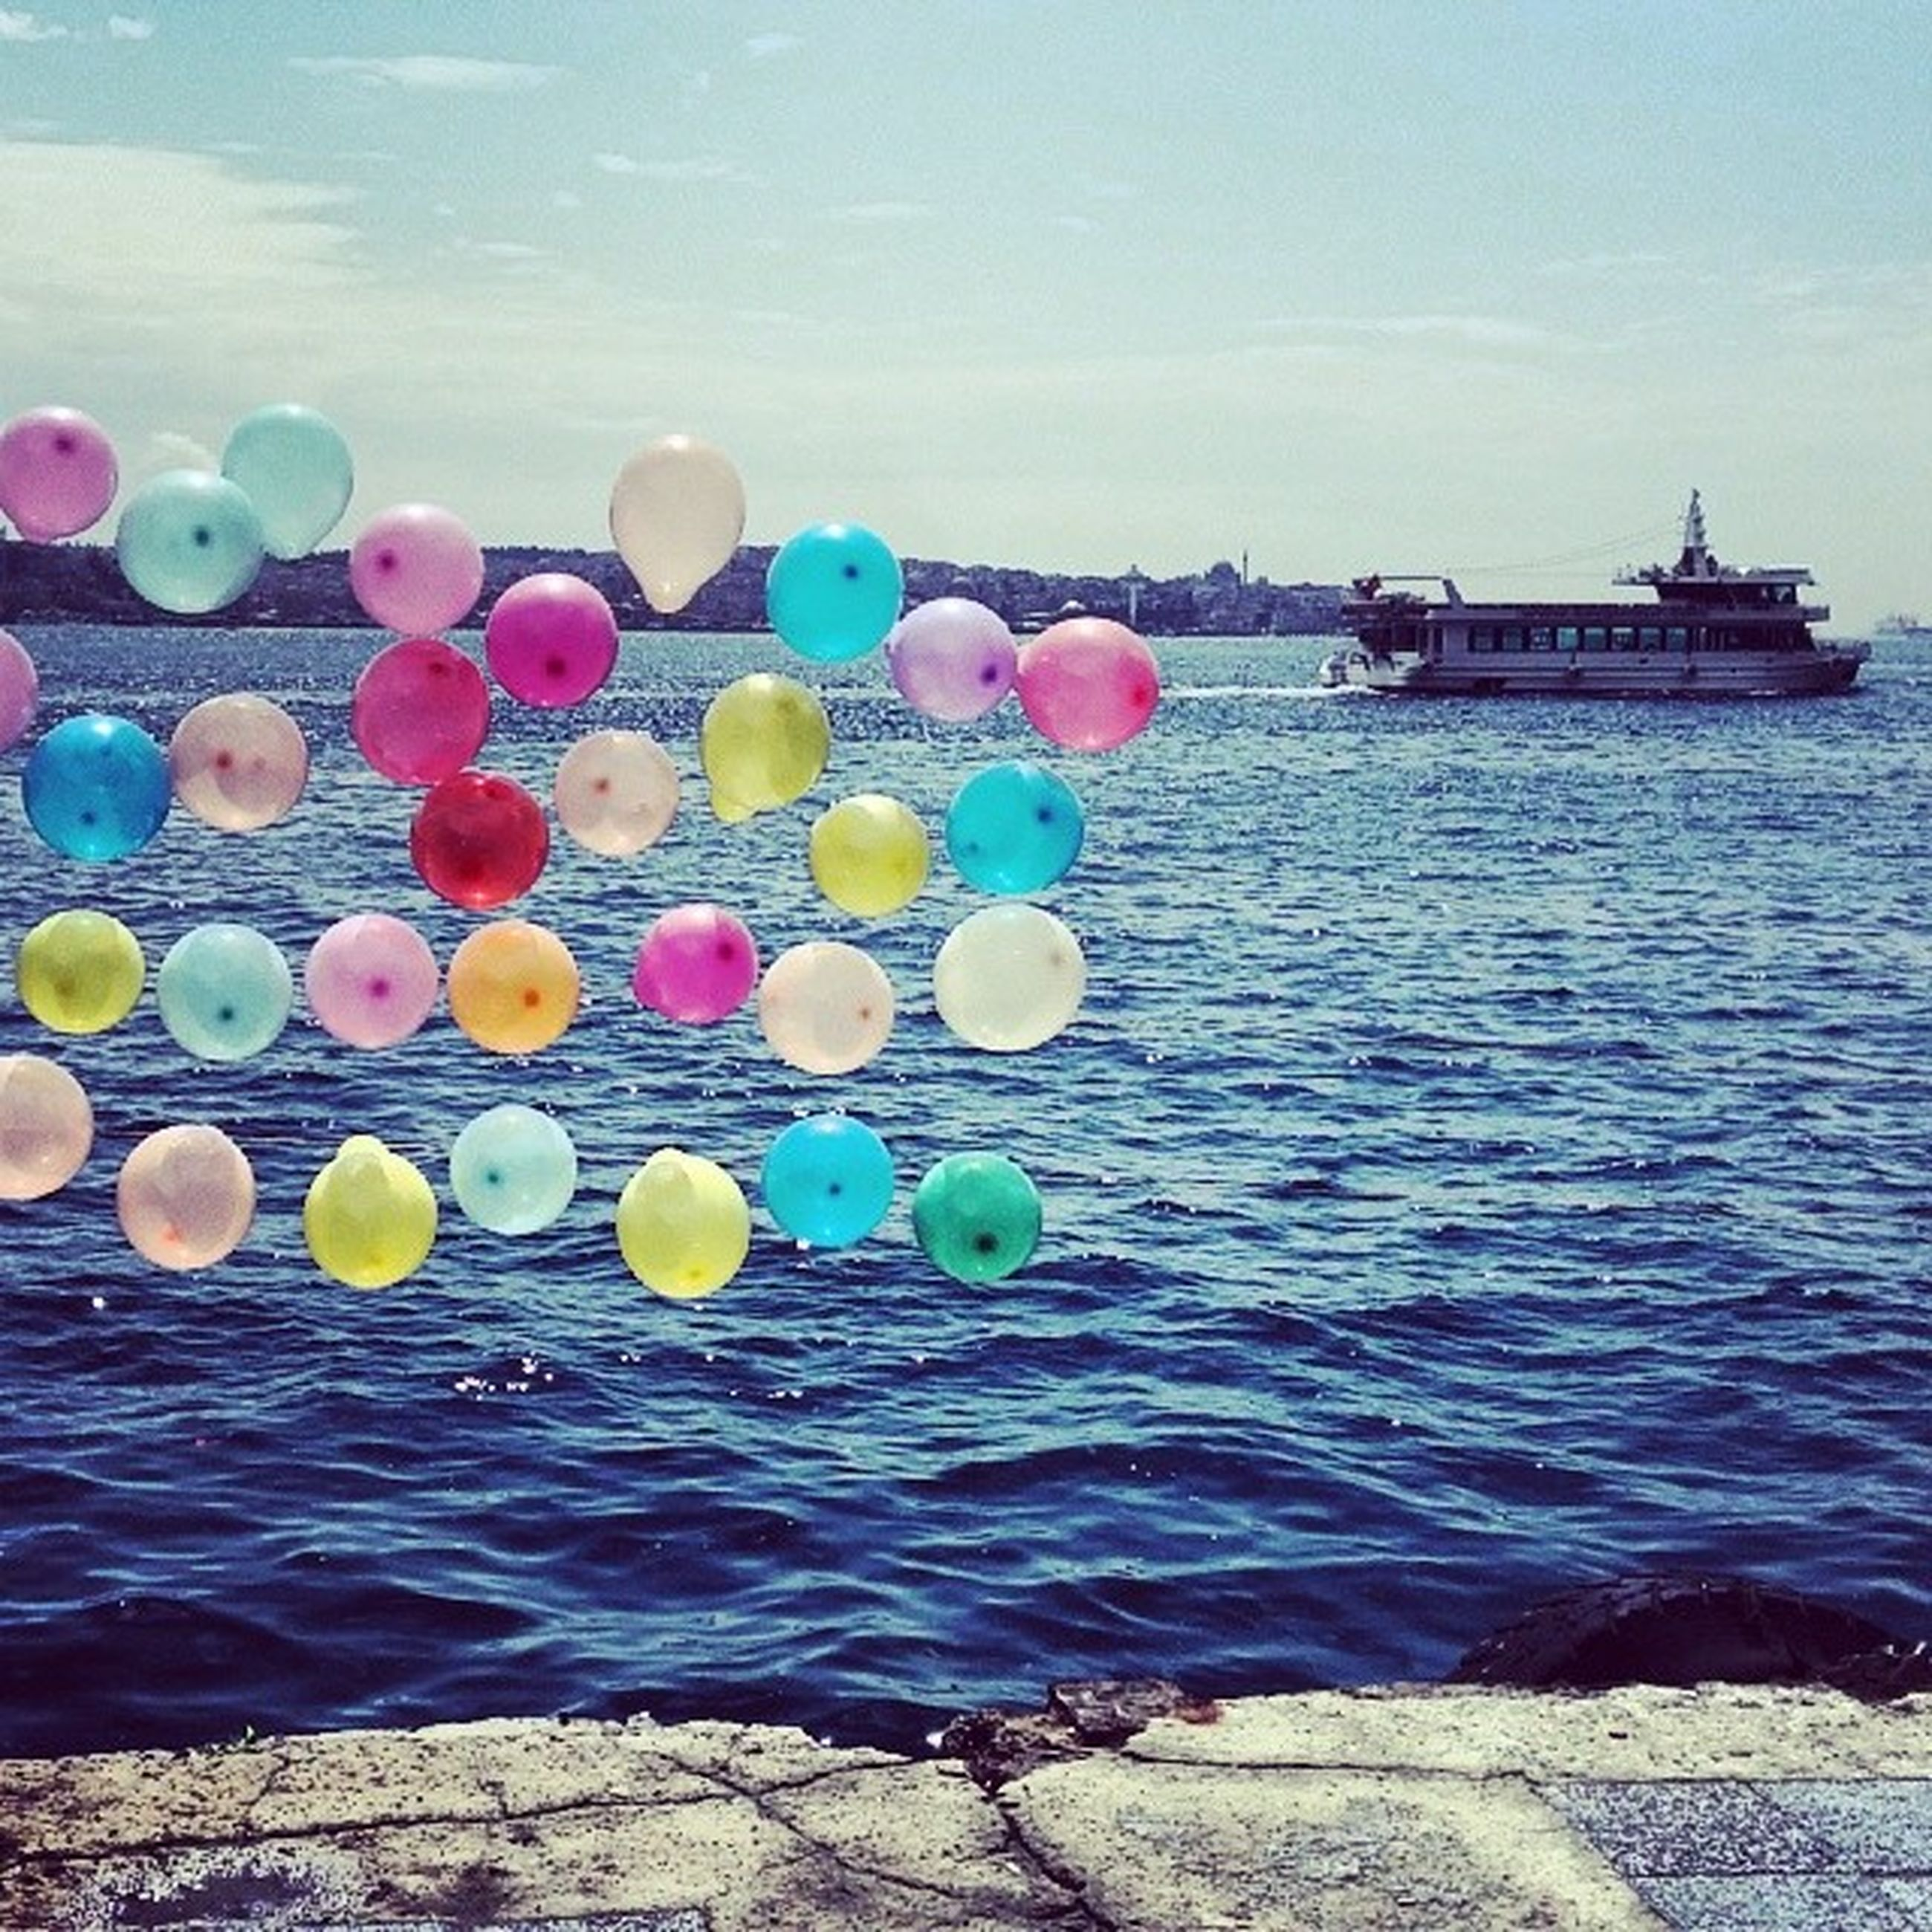 water, sea, multi colored, sky, balloon, blue, horizon over water, nature, tranquility, colorful, beauty in nature, tranquil scene, outdoors, scenics, day, variation, no people, abundance, reflection, large group of objects